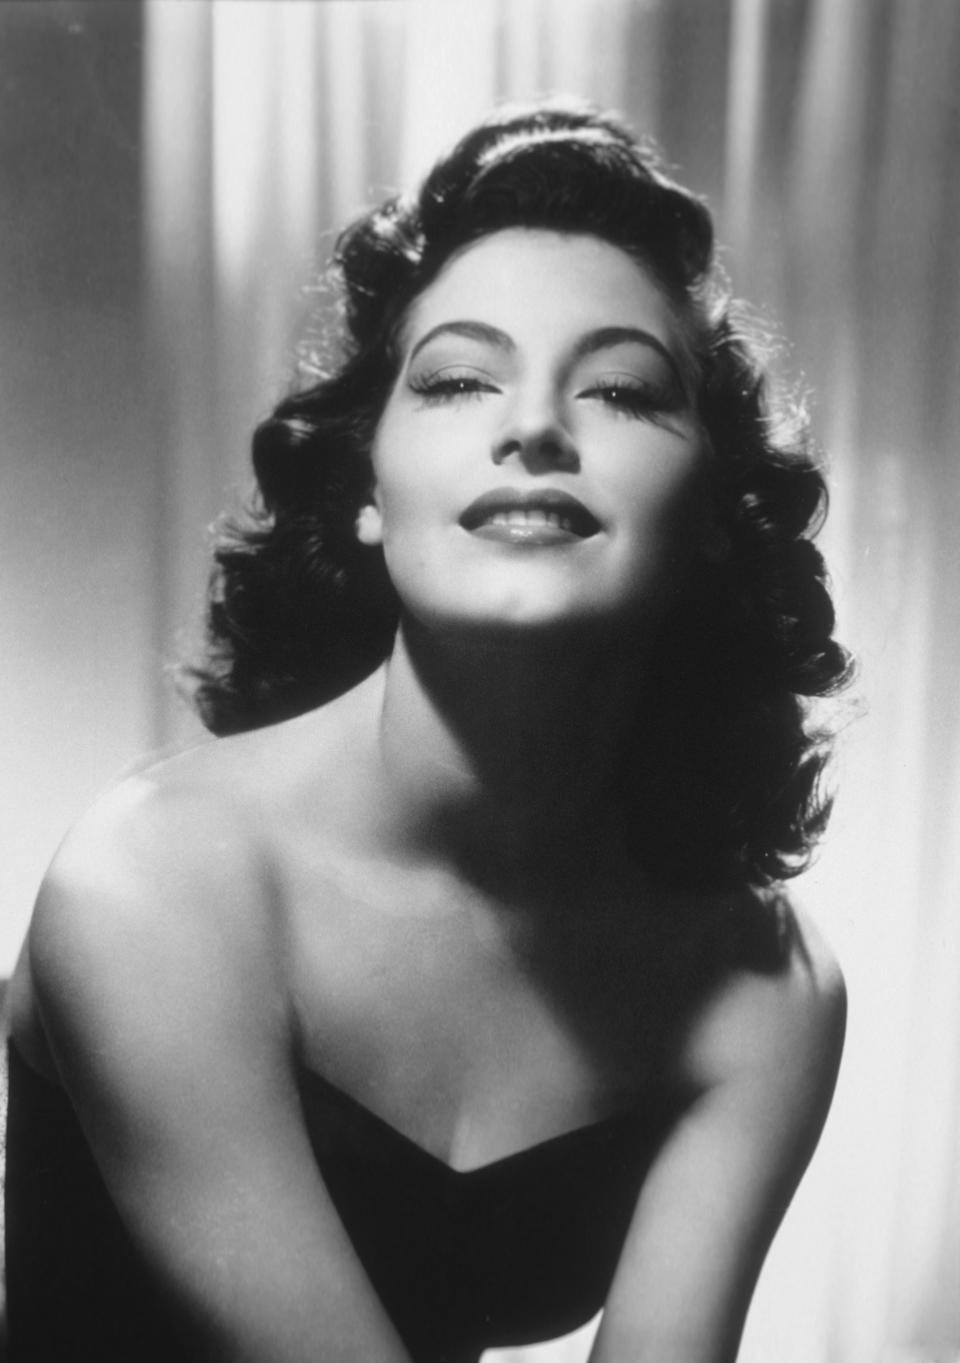 American actress Ava Gardner (Photo by Sunset Boulevard/Corbis via Getty Images)